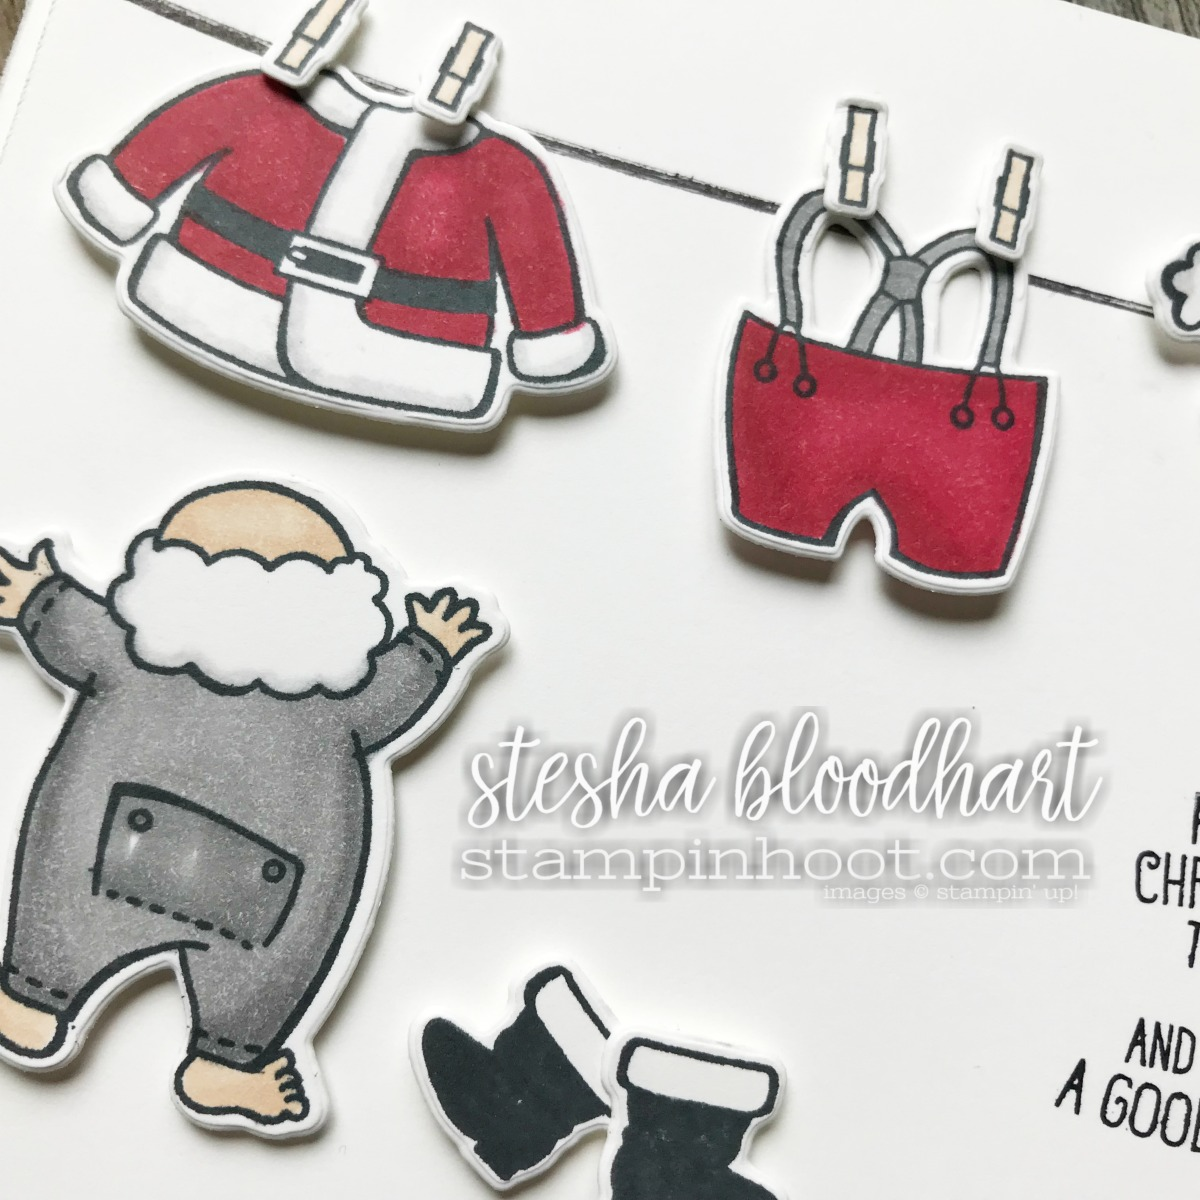 Santa's Suit Photopolymer Bundle by Stampin' Up! Retiring 2017 Holiday Catalog January 2, 2018 Card Created for TGIFC Last Minute Santa by Stesha Bloodhart, Stampin' Hoot! #tgifc139 #steshabloodhart #stampinhoot